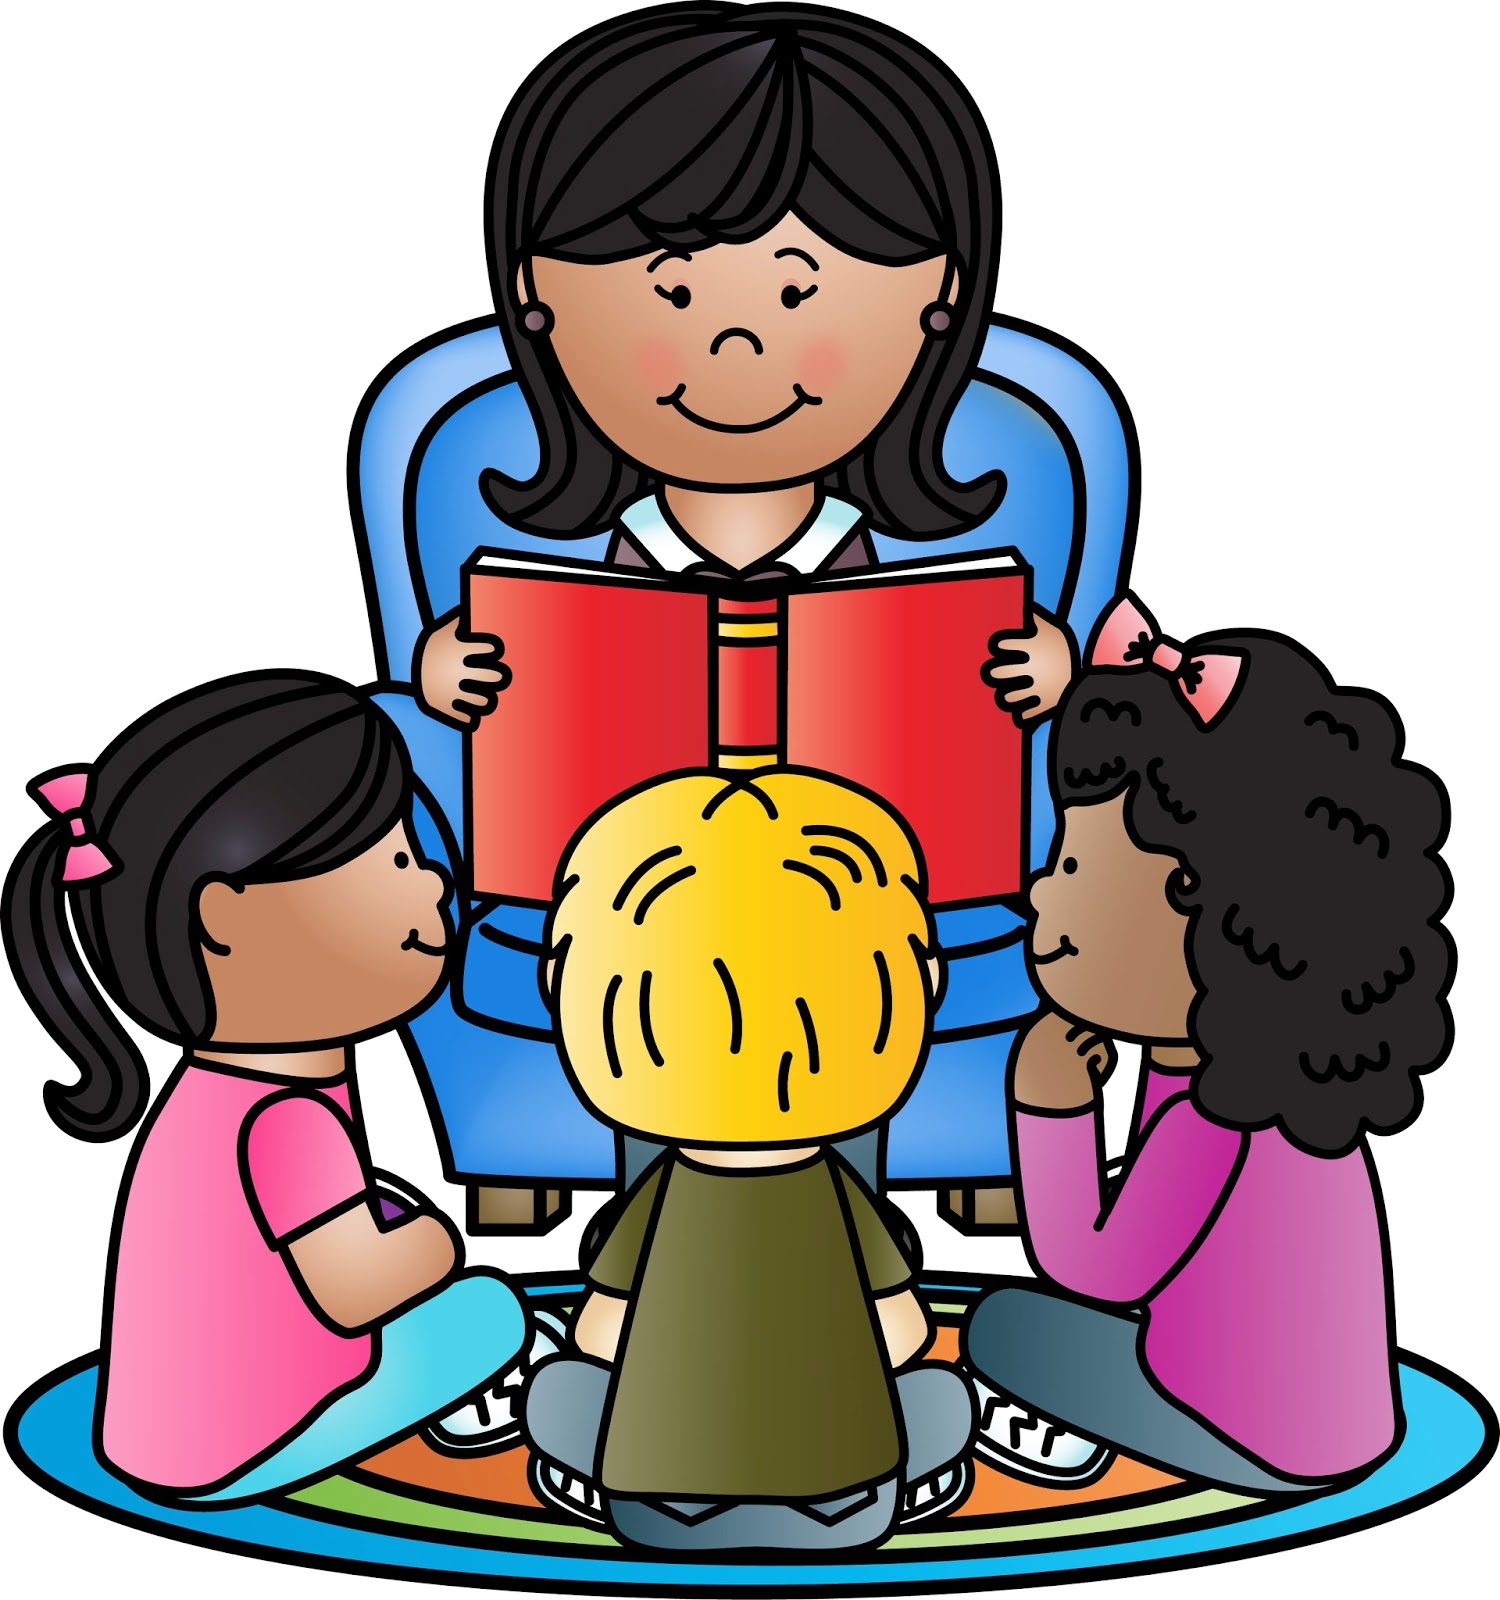 teacher and student clipart - photo #28